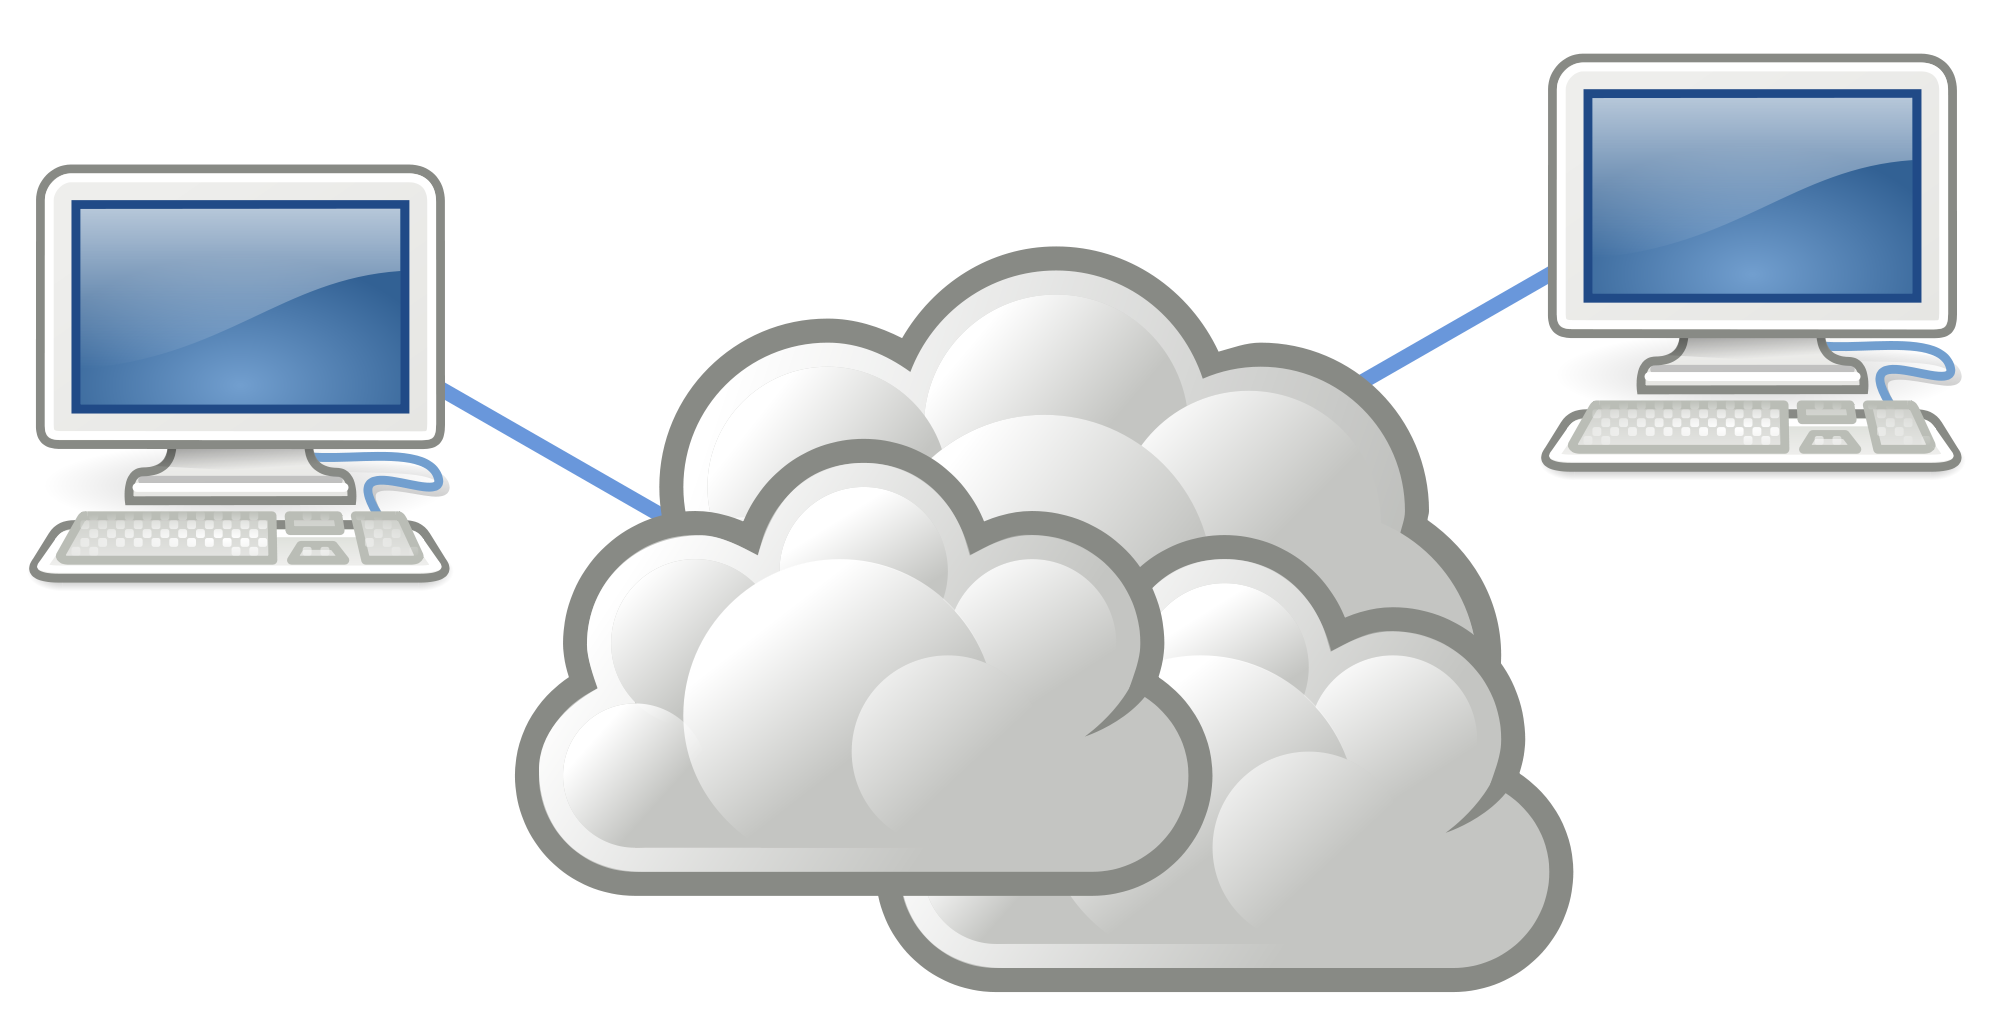 File as cloud svg. Electronics clipart internet thing